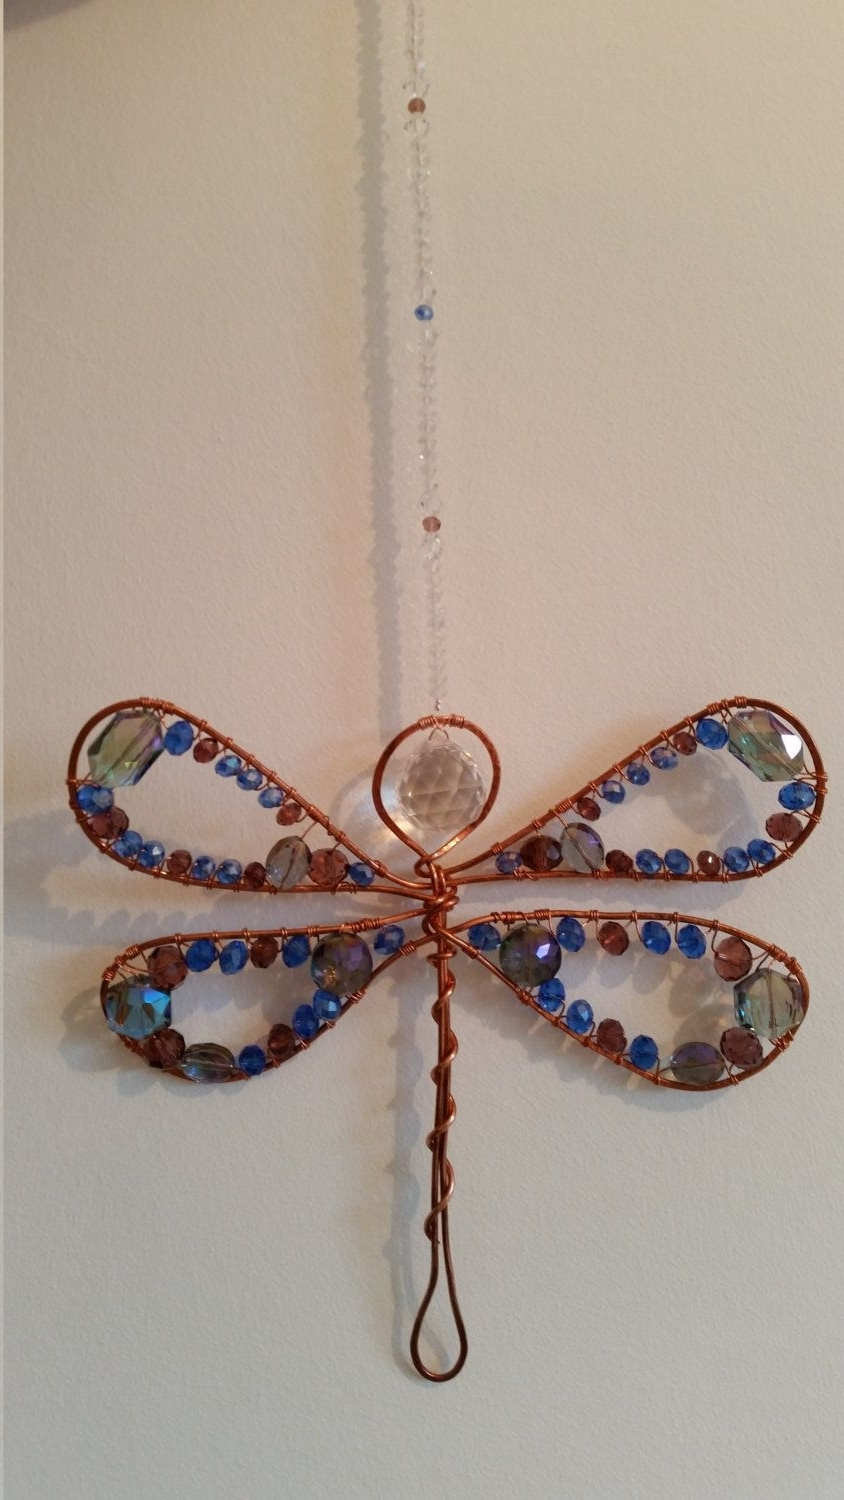 Dragonfly Copper Wire Wrap Suncatcher With Crystal Beading & Prism Throughout Fashionable Ponytail Wrapped In Copper Wire And Beads (Gallery 13 of 15)